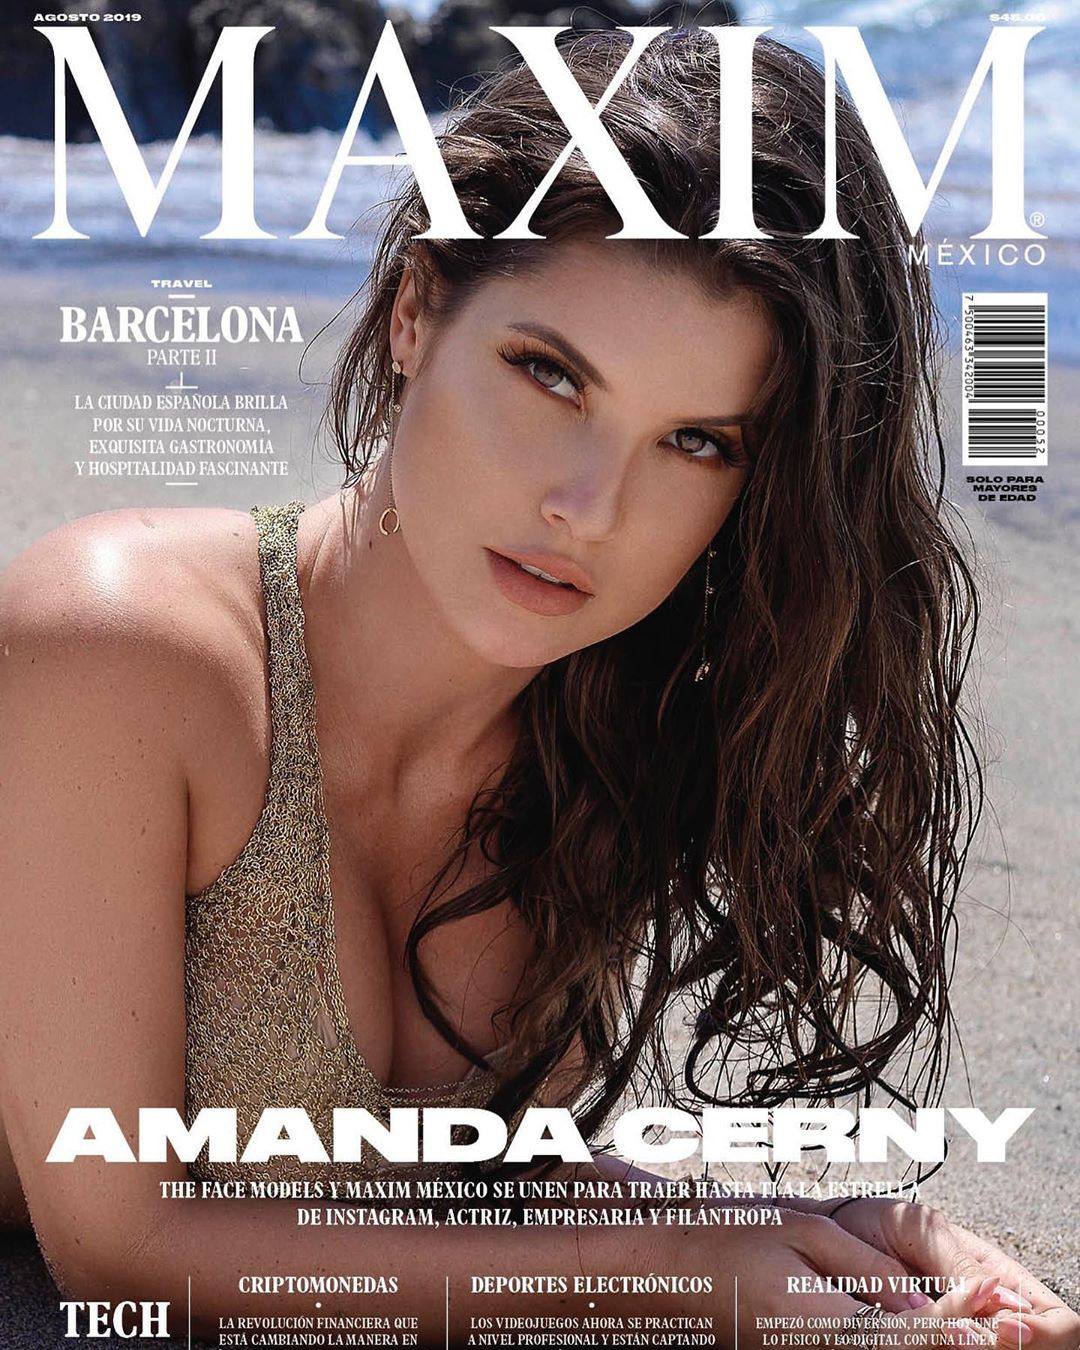 Classy fabulous fashionable amanda cerny, Photo shoot